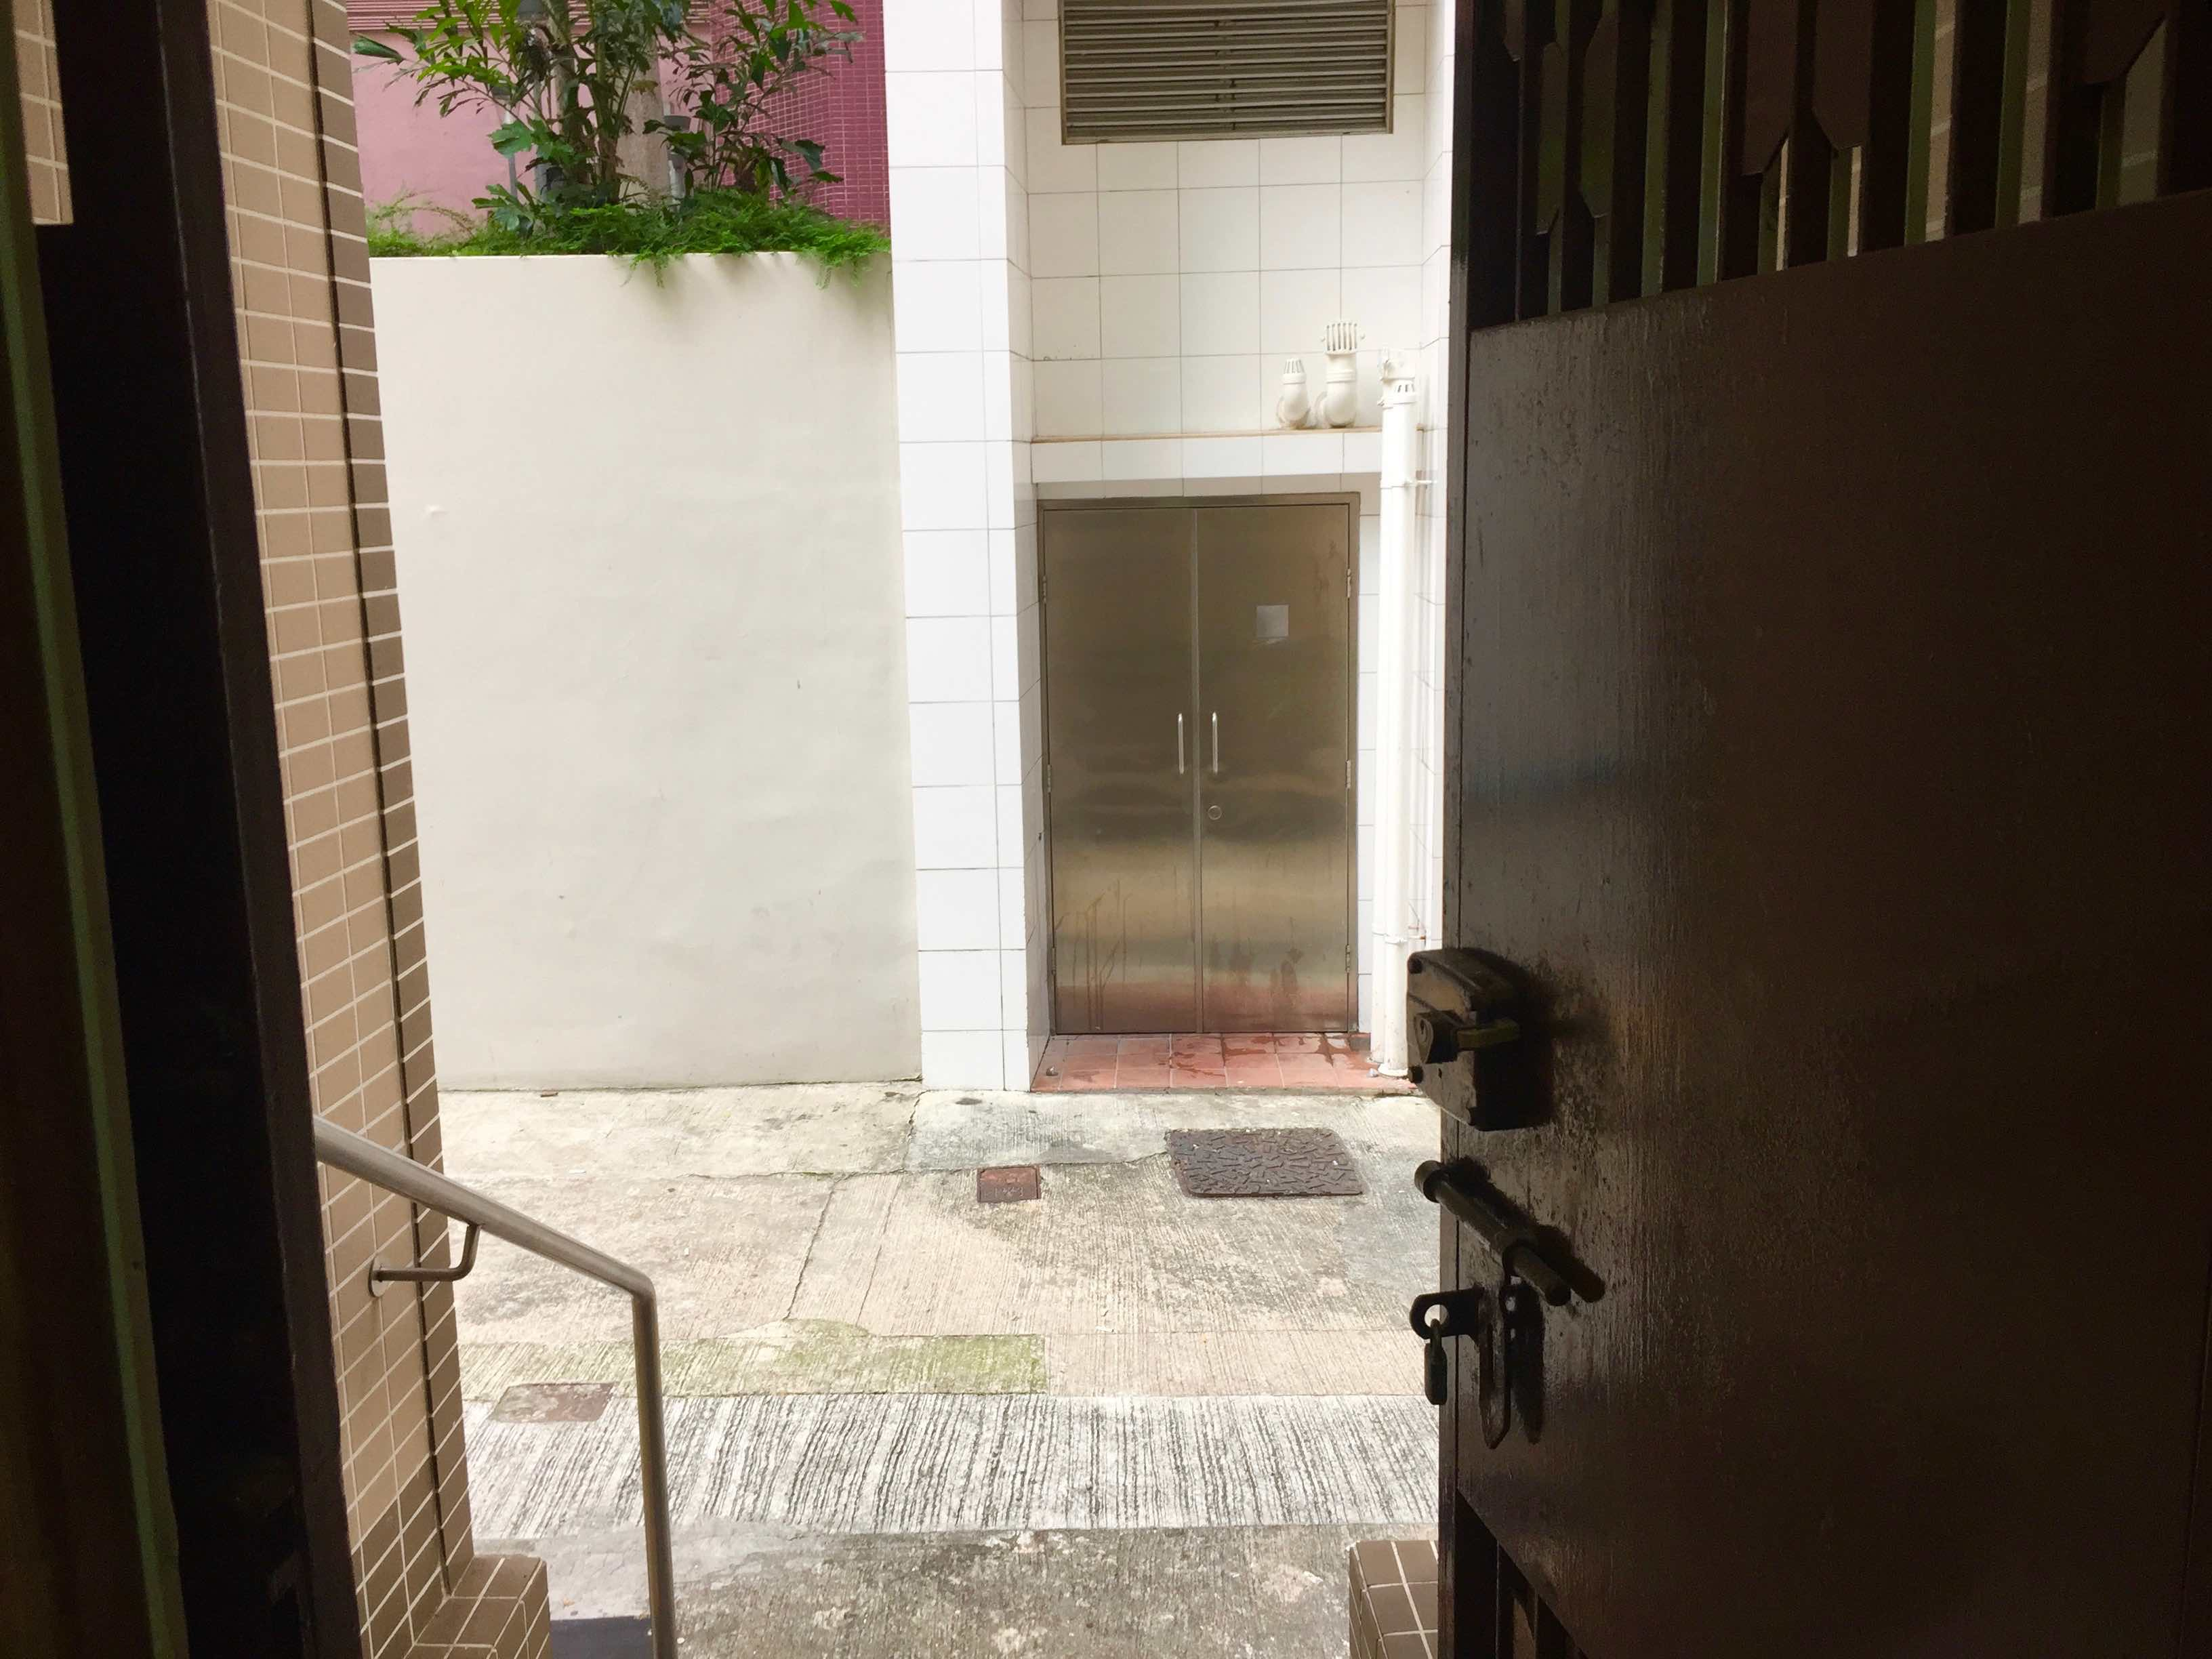 HK Central private clubbing F&B Shop for lease with hidden entrance